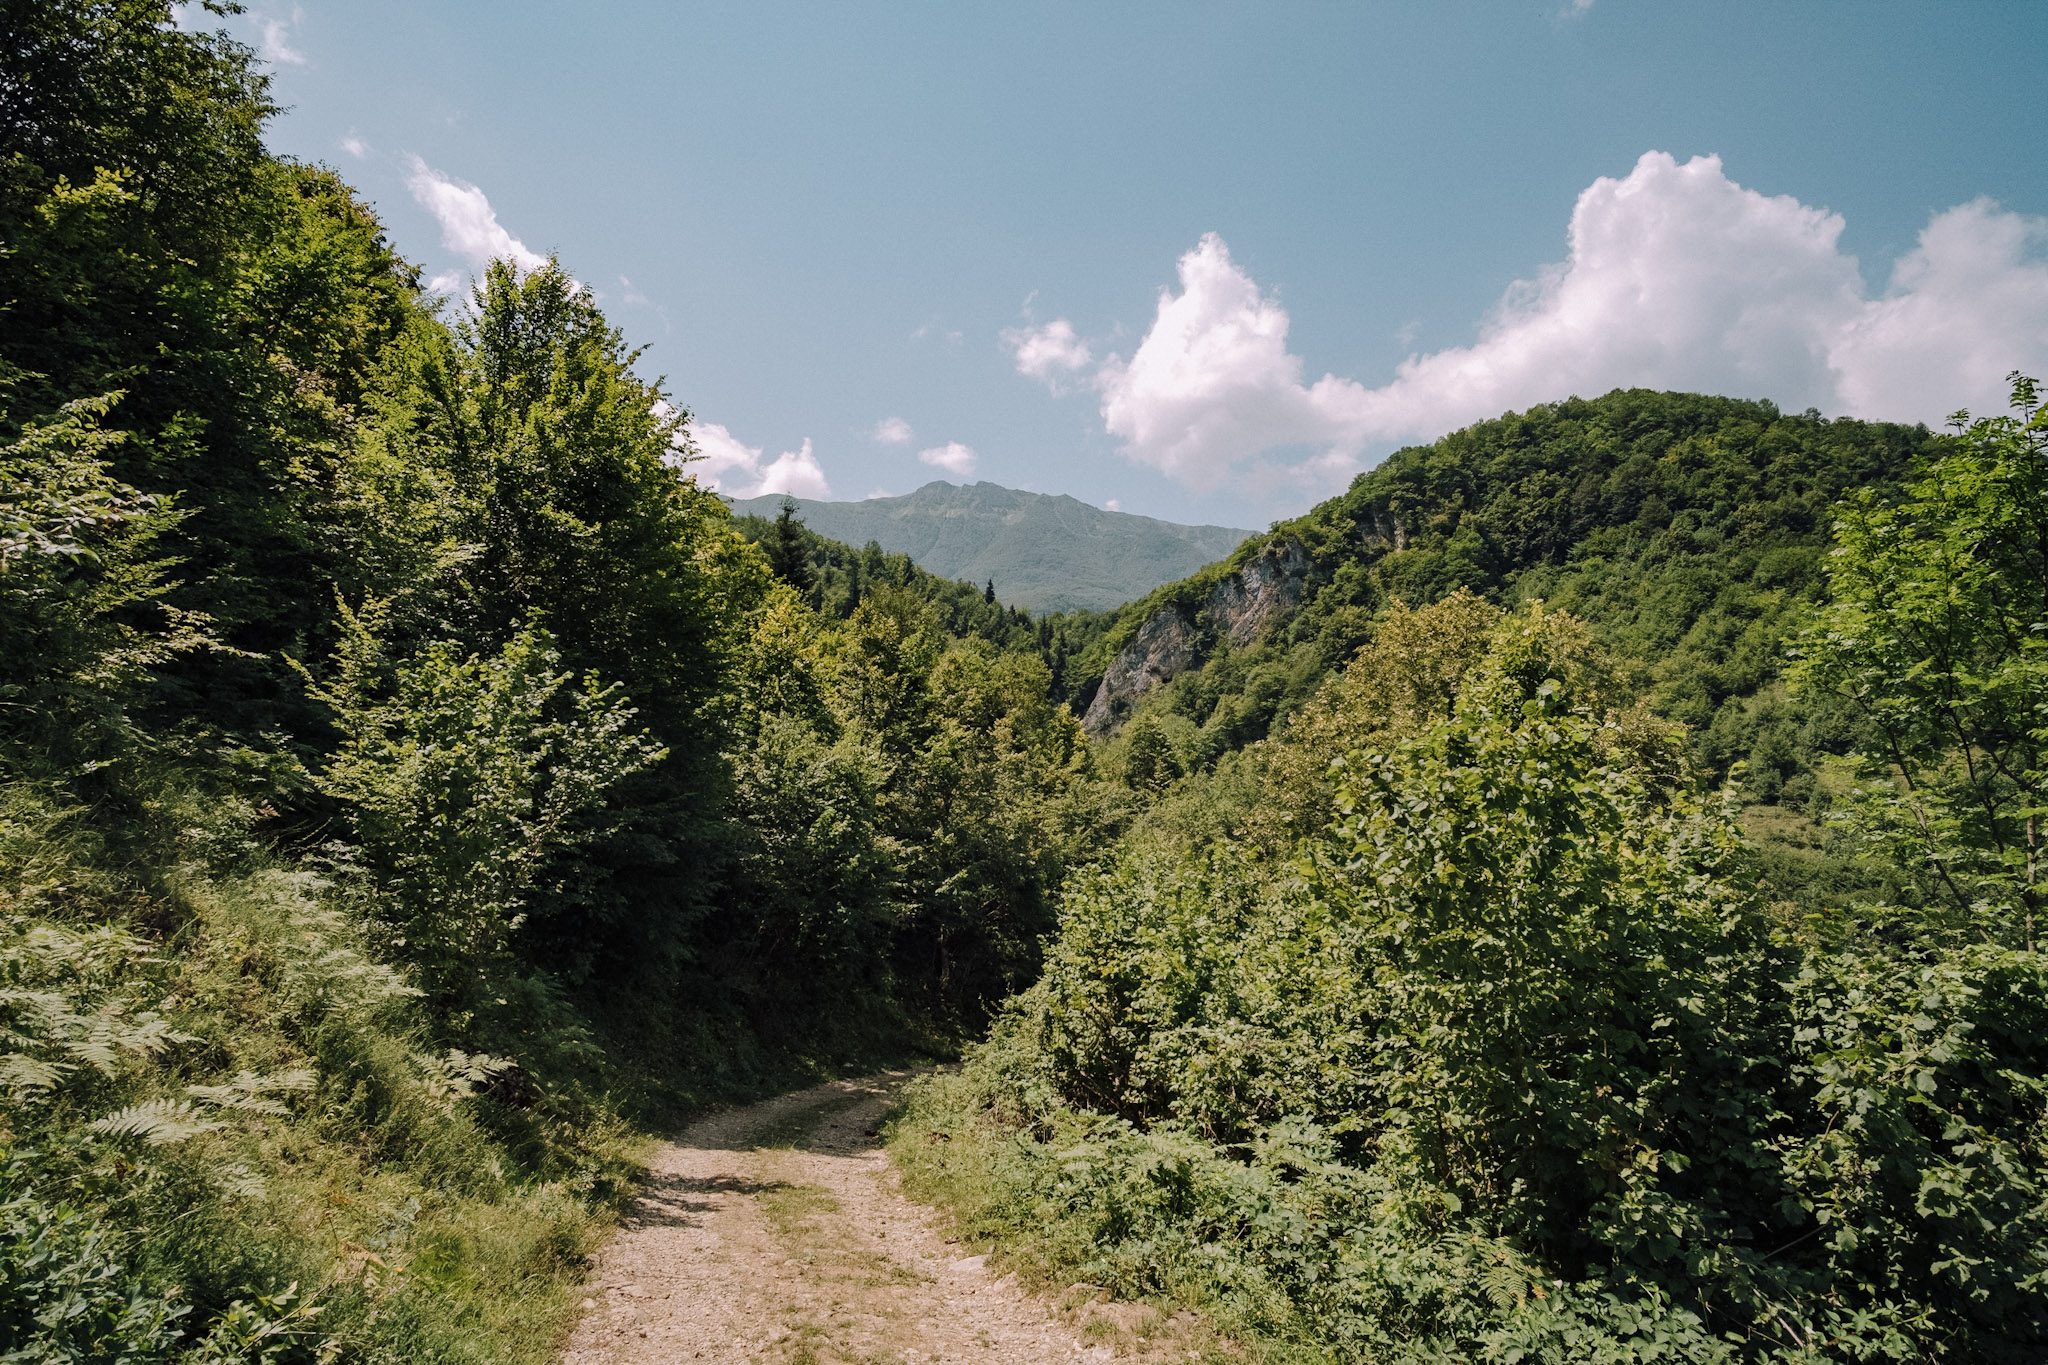 Paradise trail in Dimitri Mais' father's village of Tskhmori is a wide, well-worn path that cuts through the mountainside